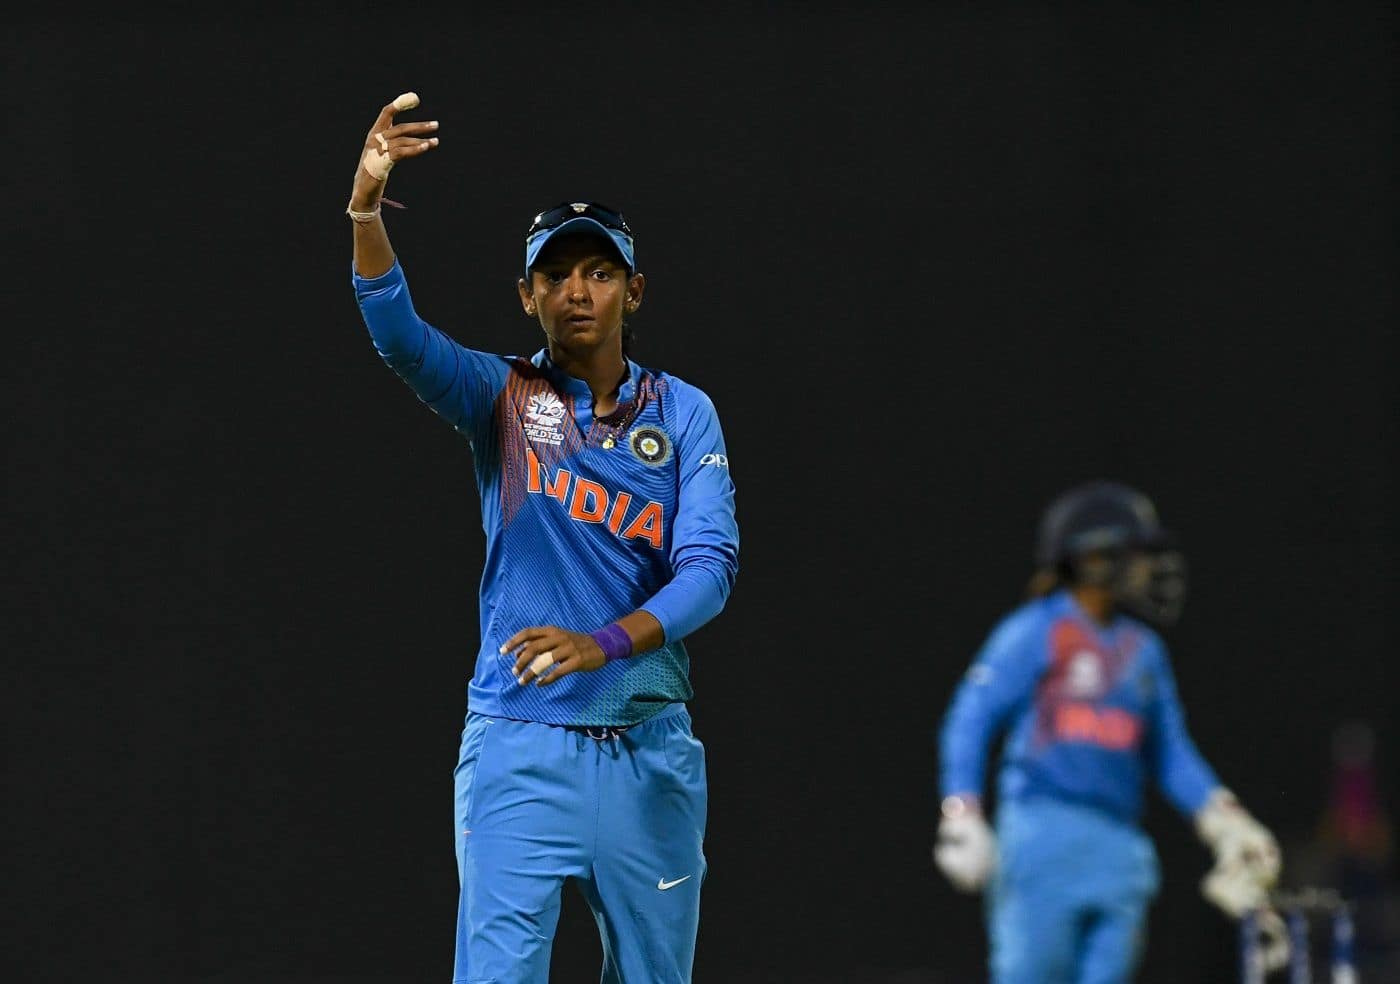 I was clear about India's XI for World T20 semi-final: Harmanpreet Kaur